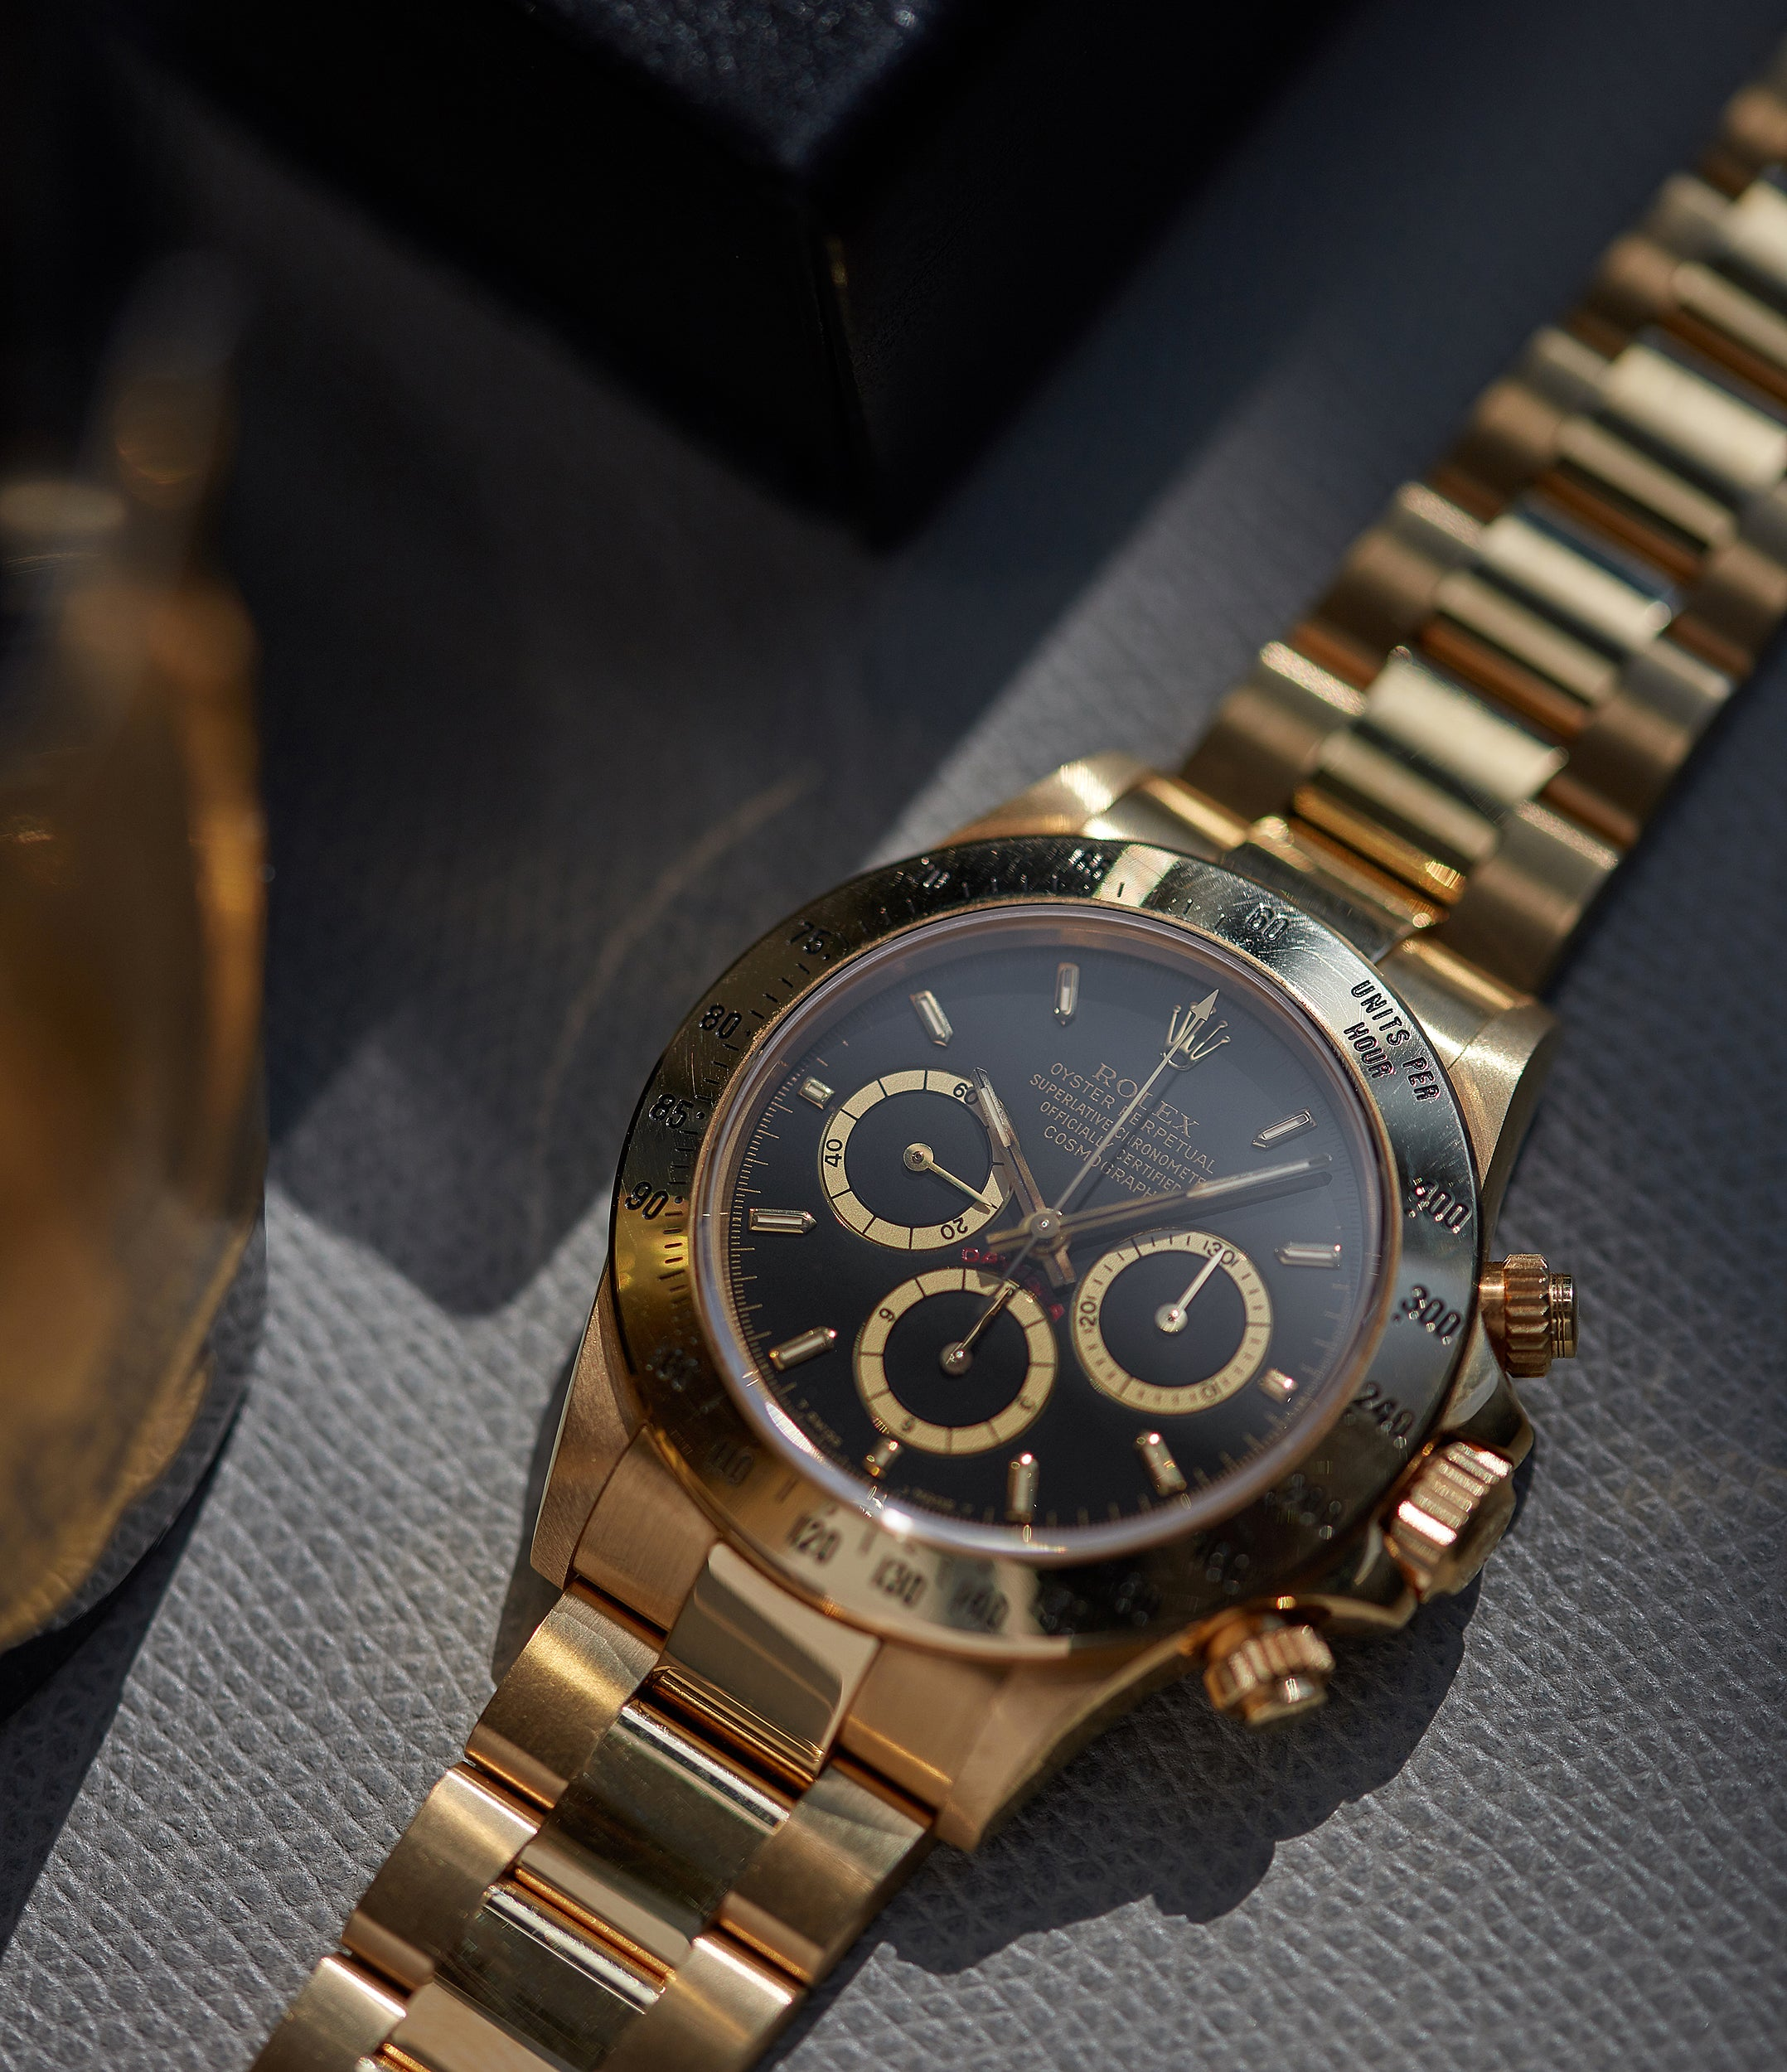 collect vintage Rolex 16528 Daytona Zenith yellow gold black dial full set vintage watch for sale online at A Collected Man London UK specialist of rare watches